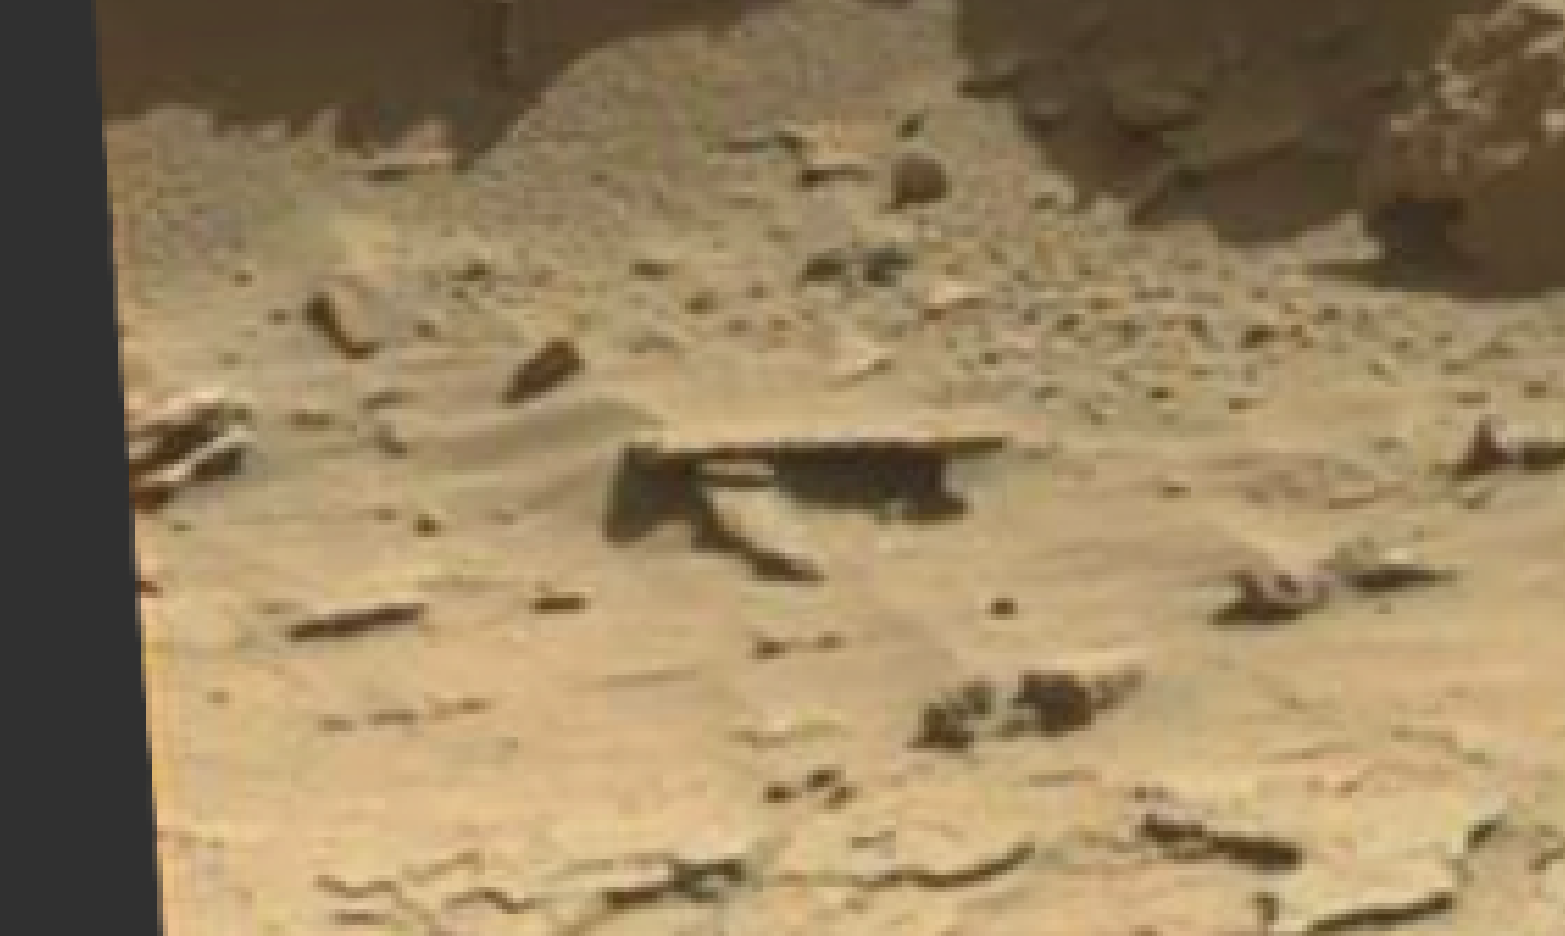 mars sol 1298 anomaly-artifacts 18 was life on mars